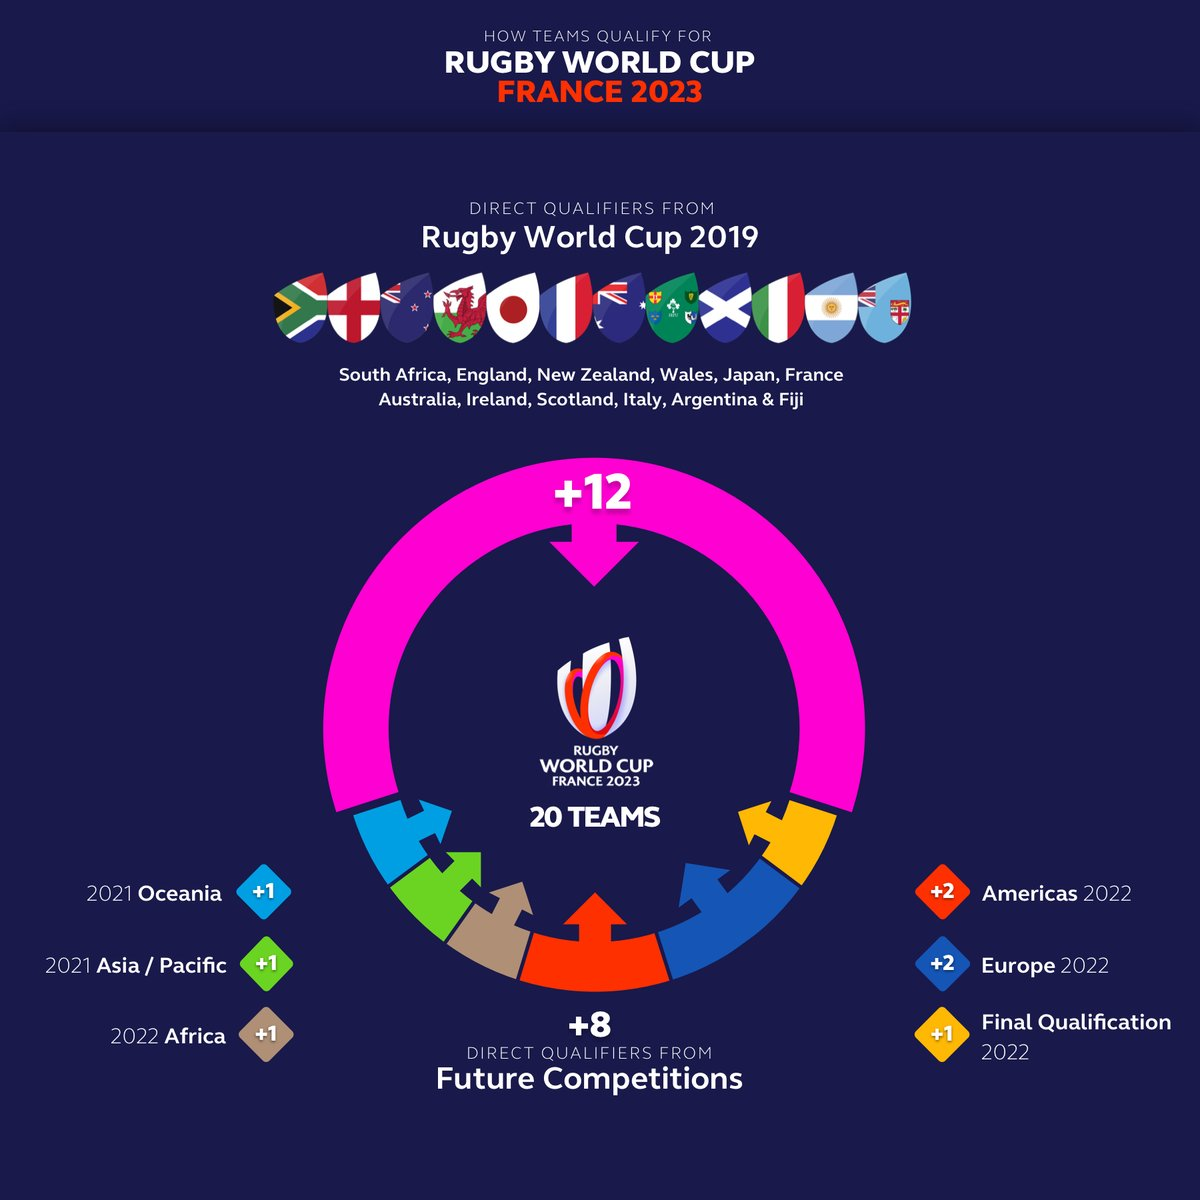 NEWS | @WorldRugby sets qualification process for #RWC2023. Two Americas teams will qualify by Sept 2022. INFO » bit.ly/2XH9Vzy